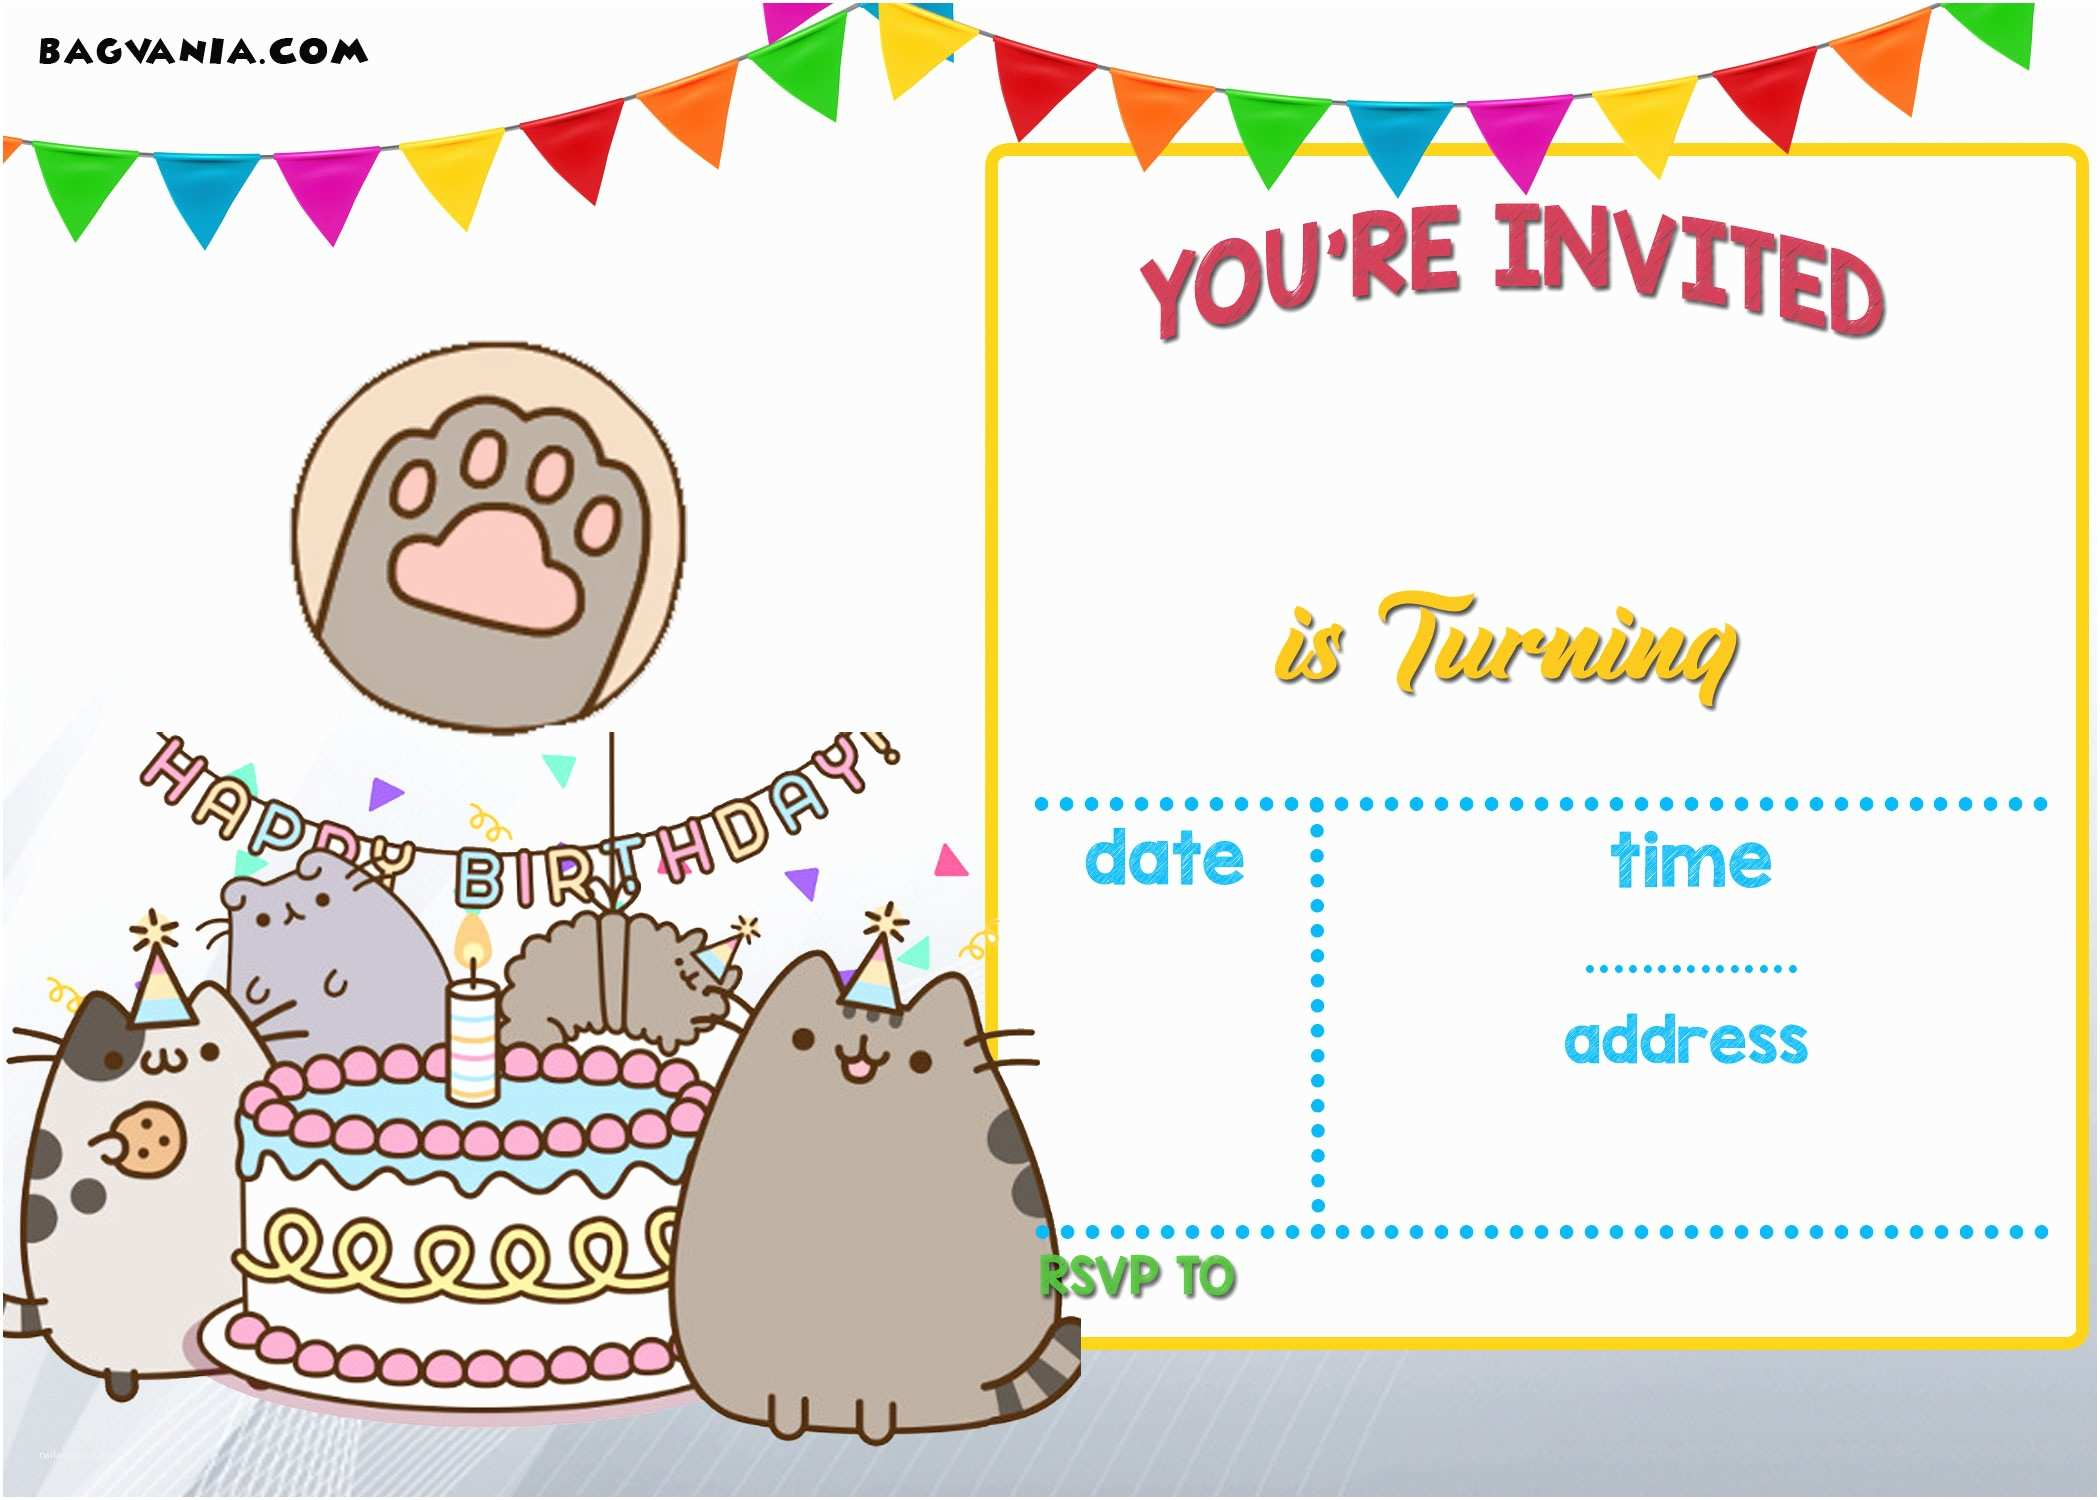 Printable Party Invitations Free Printable Pusheen Birthday Invitation Template